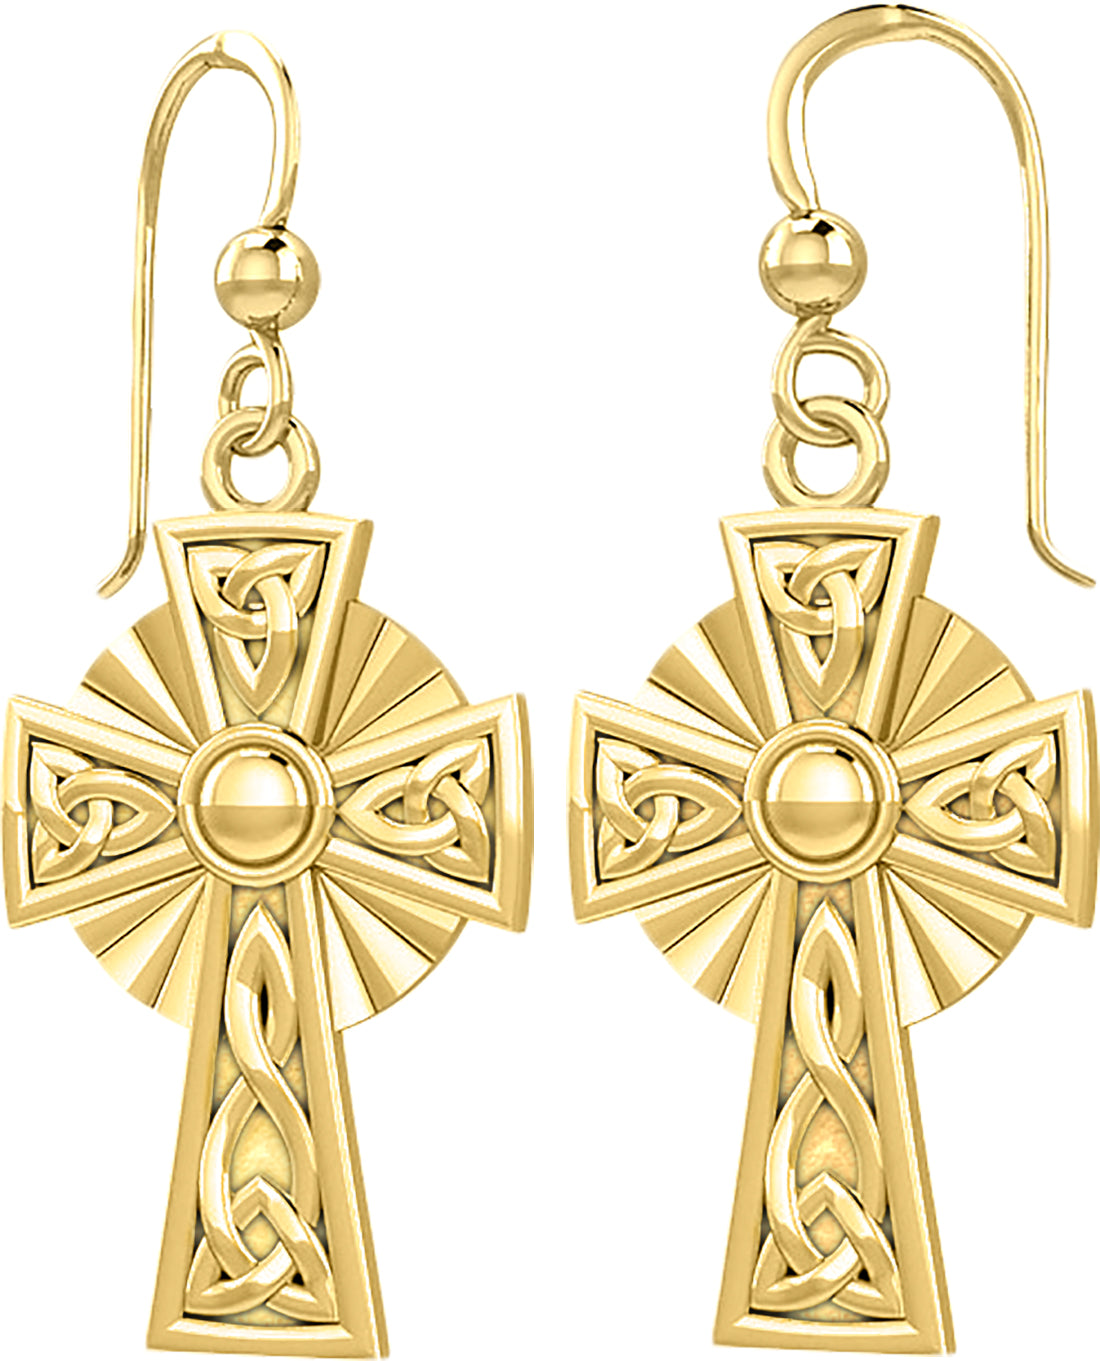 14k Yellow Gold Irish Celtic Knot Cross Earrings - US Jewels